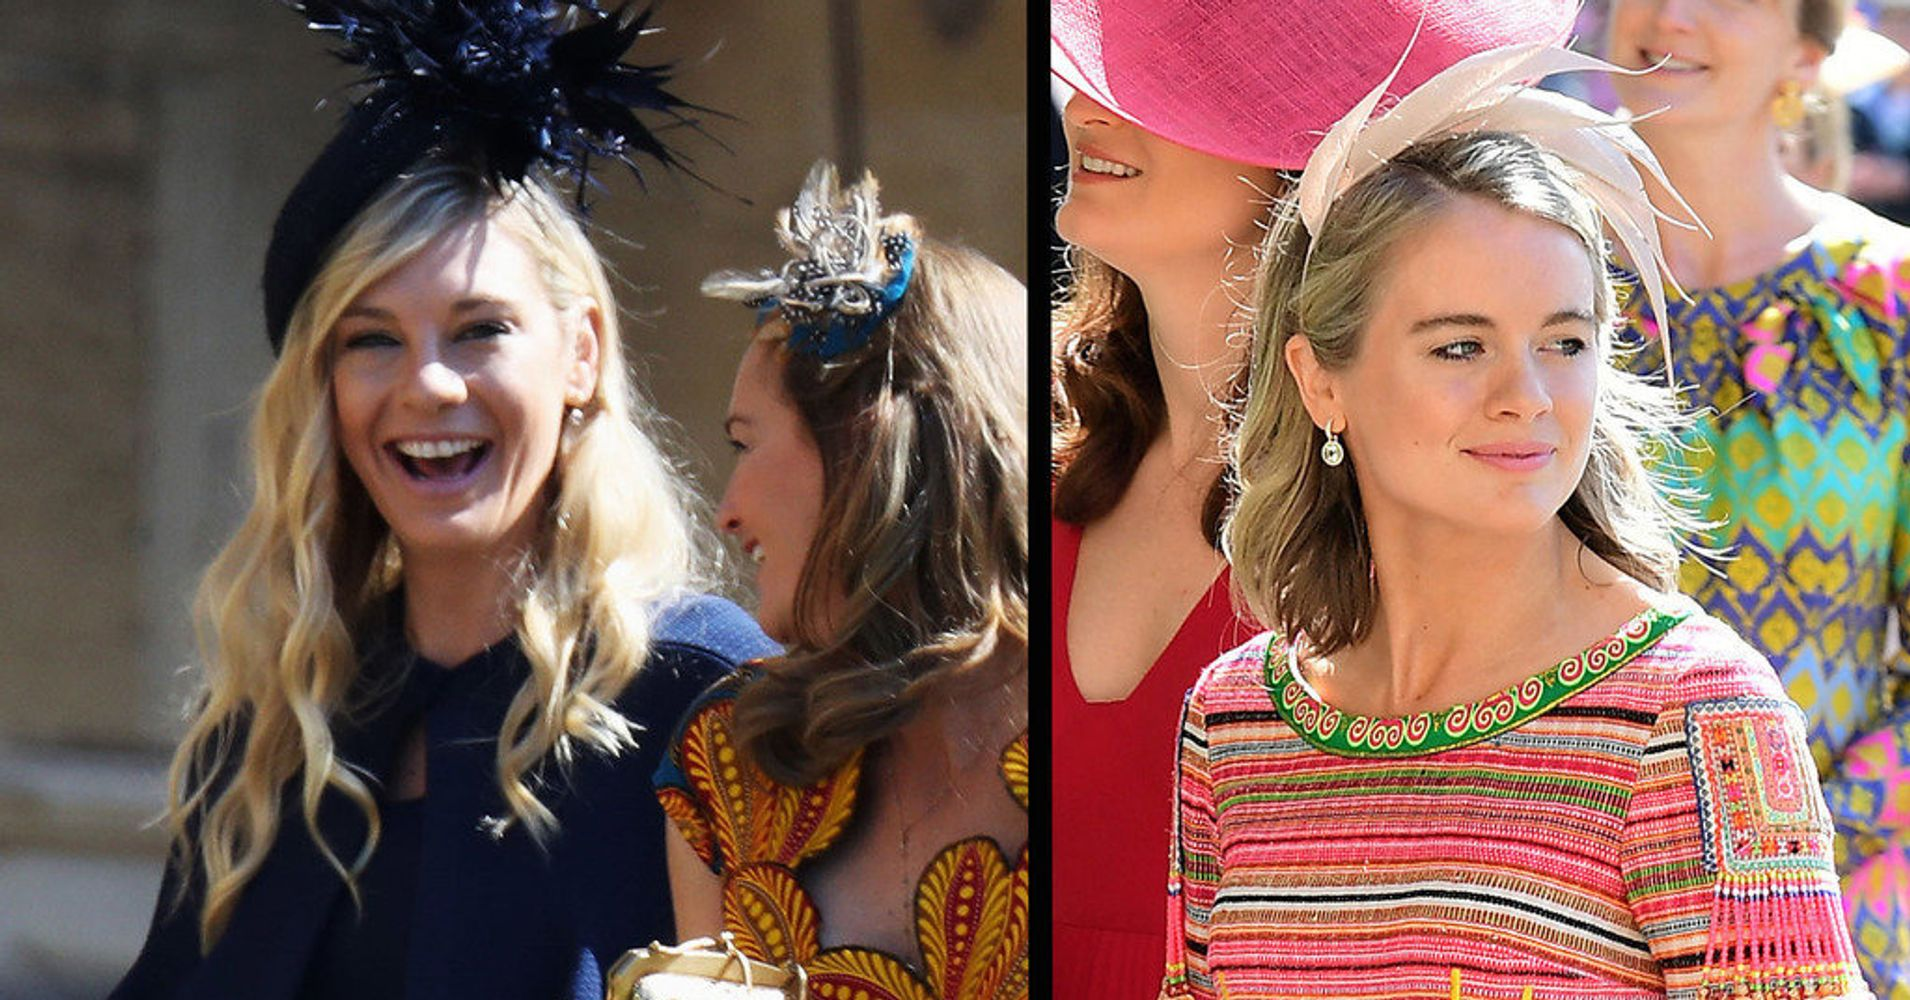 Prince Harry Ex Girlfriend Wedding.2 Of Prince Harry S Ex Girlfriends Attended The Royal Wedding Newsrust